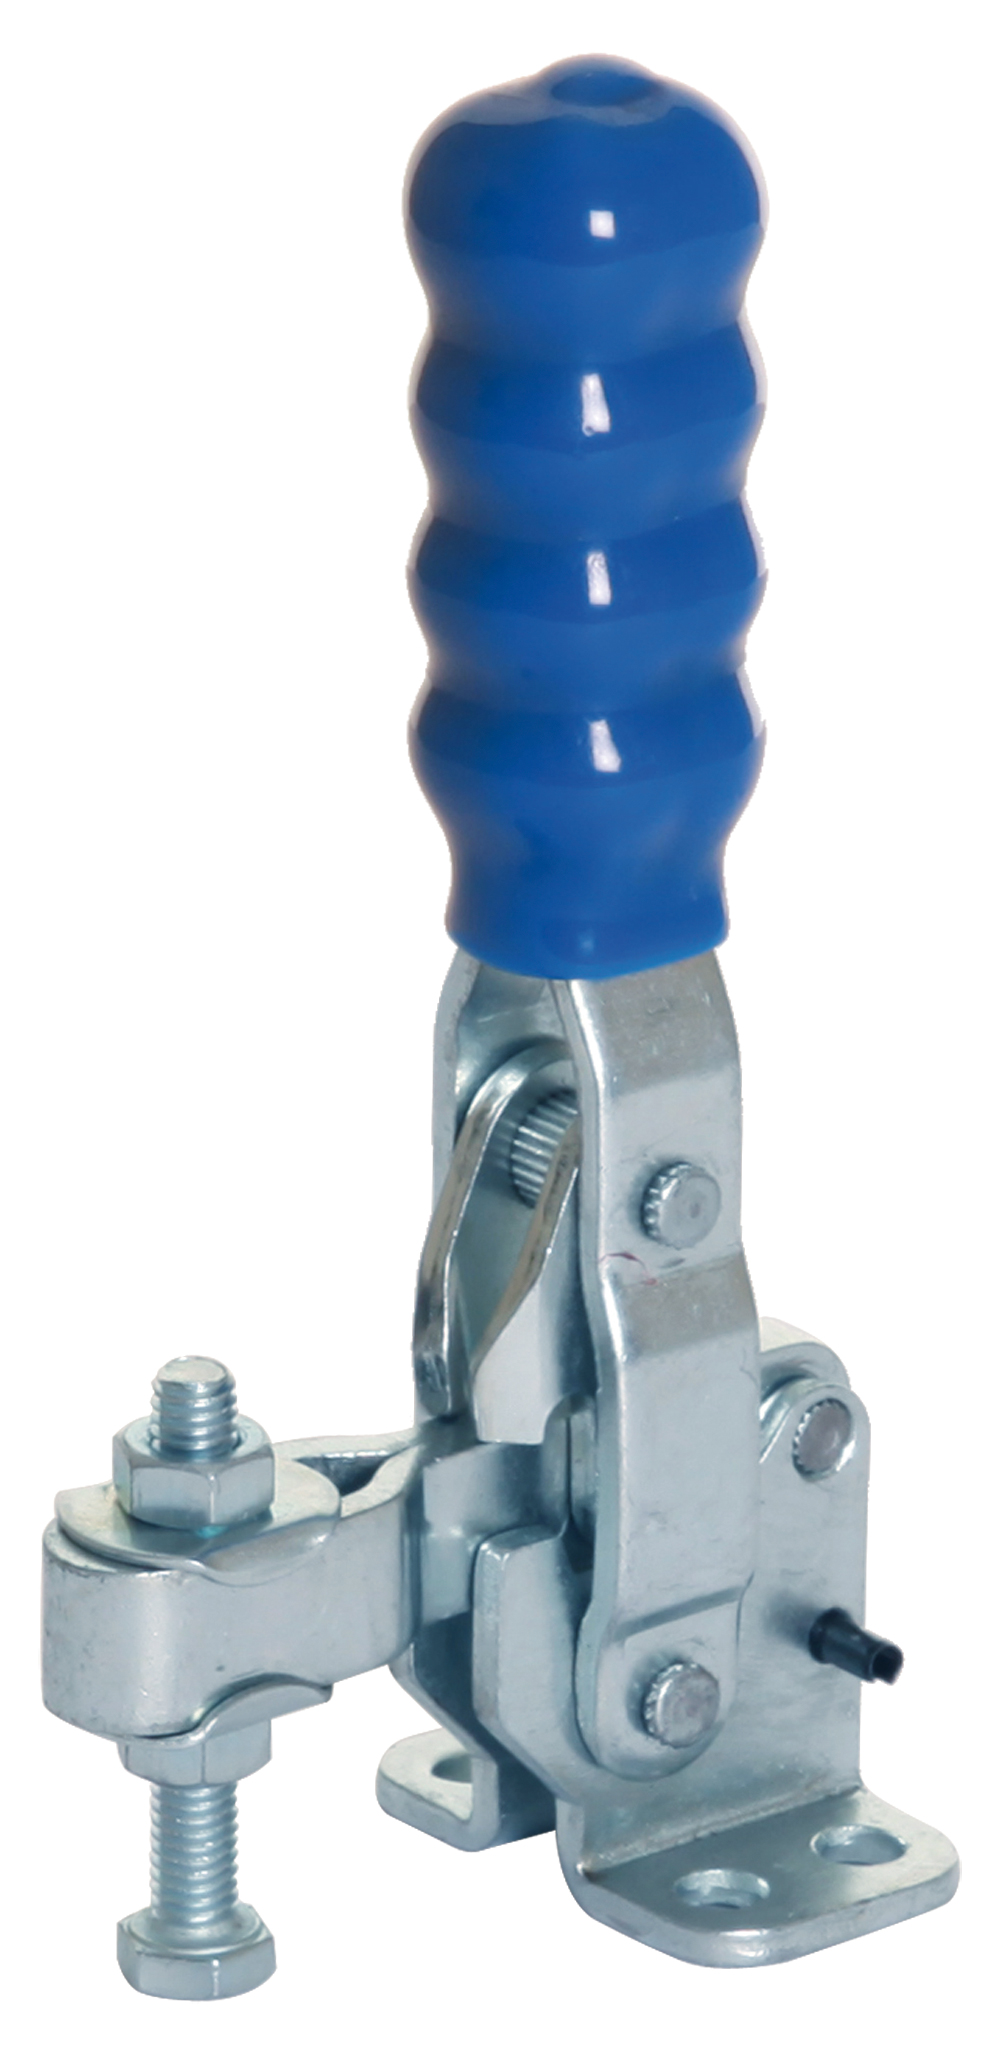 Toggle Clamp Vertical Action Adjustable Bar Mild Steel Zinc Plate Passivate (Silver Blue)